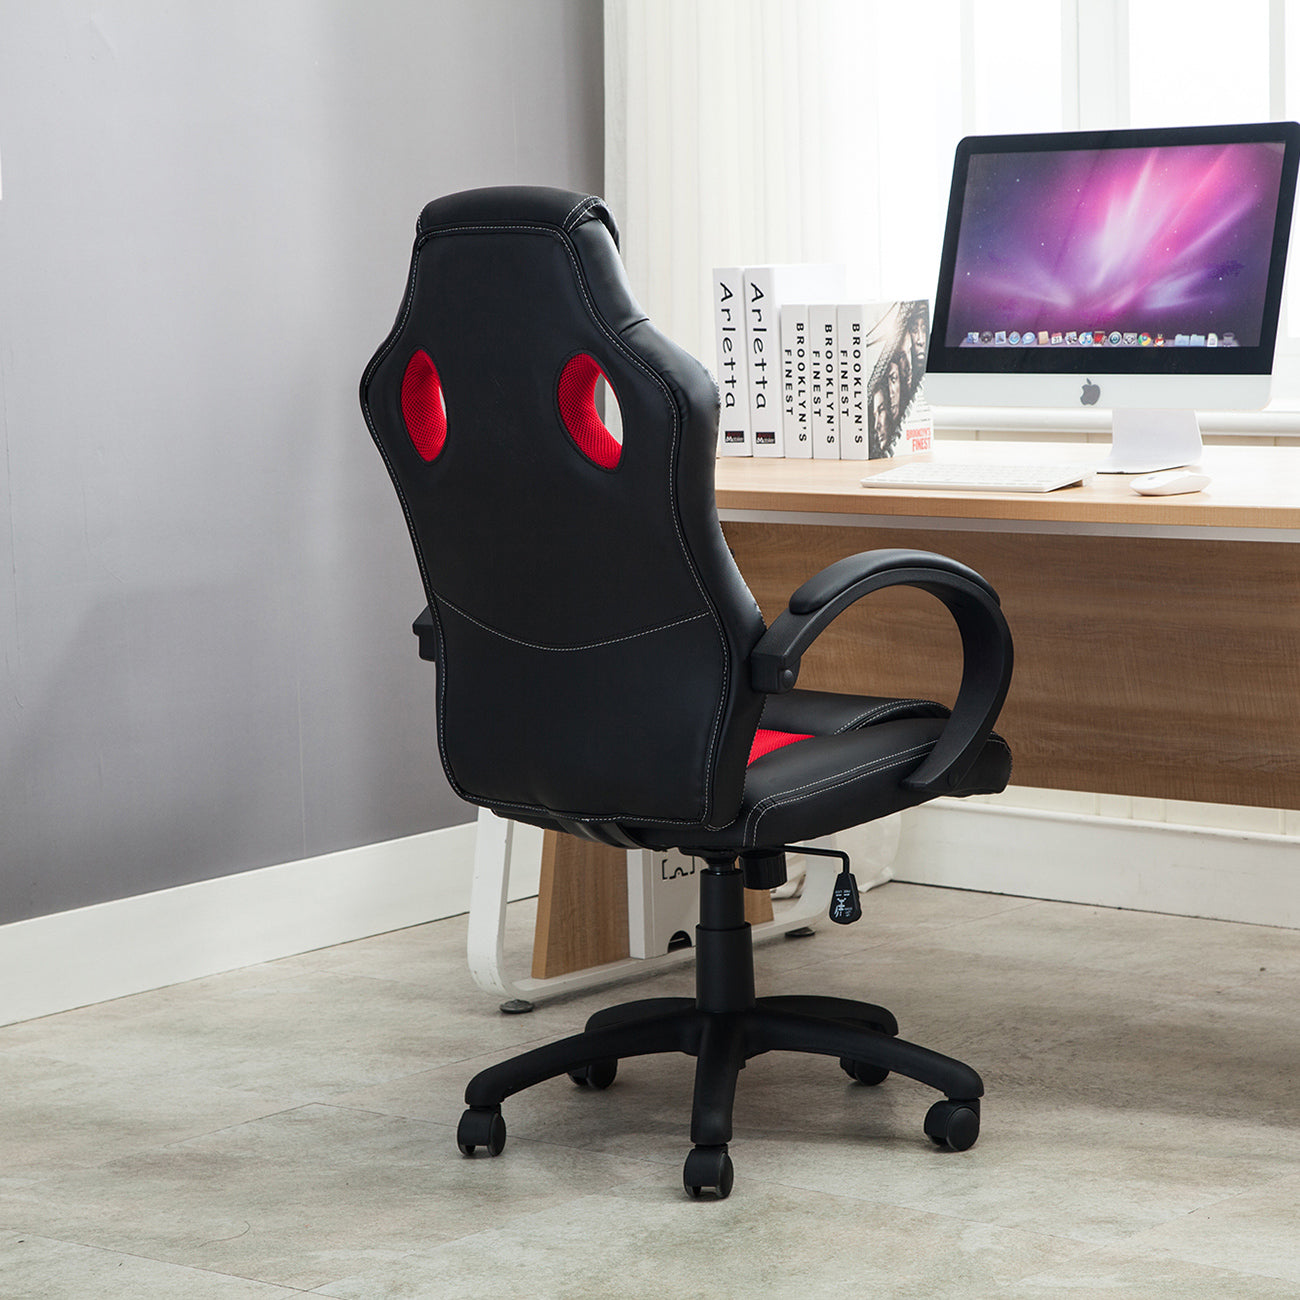 The Best Cheap Gaming Chair